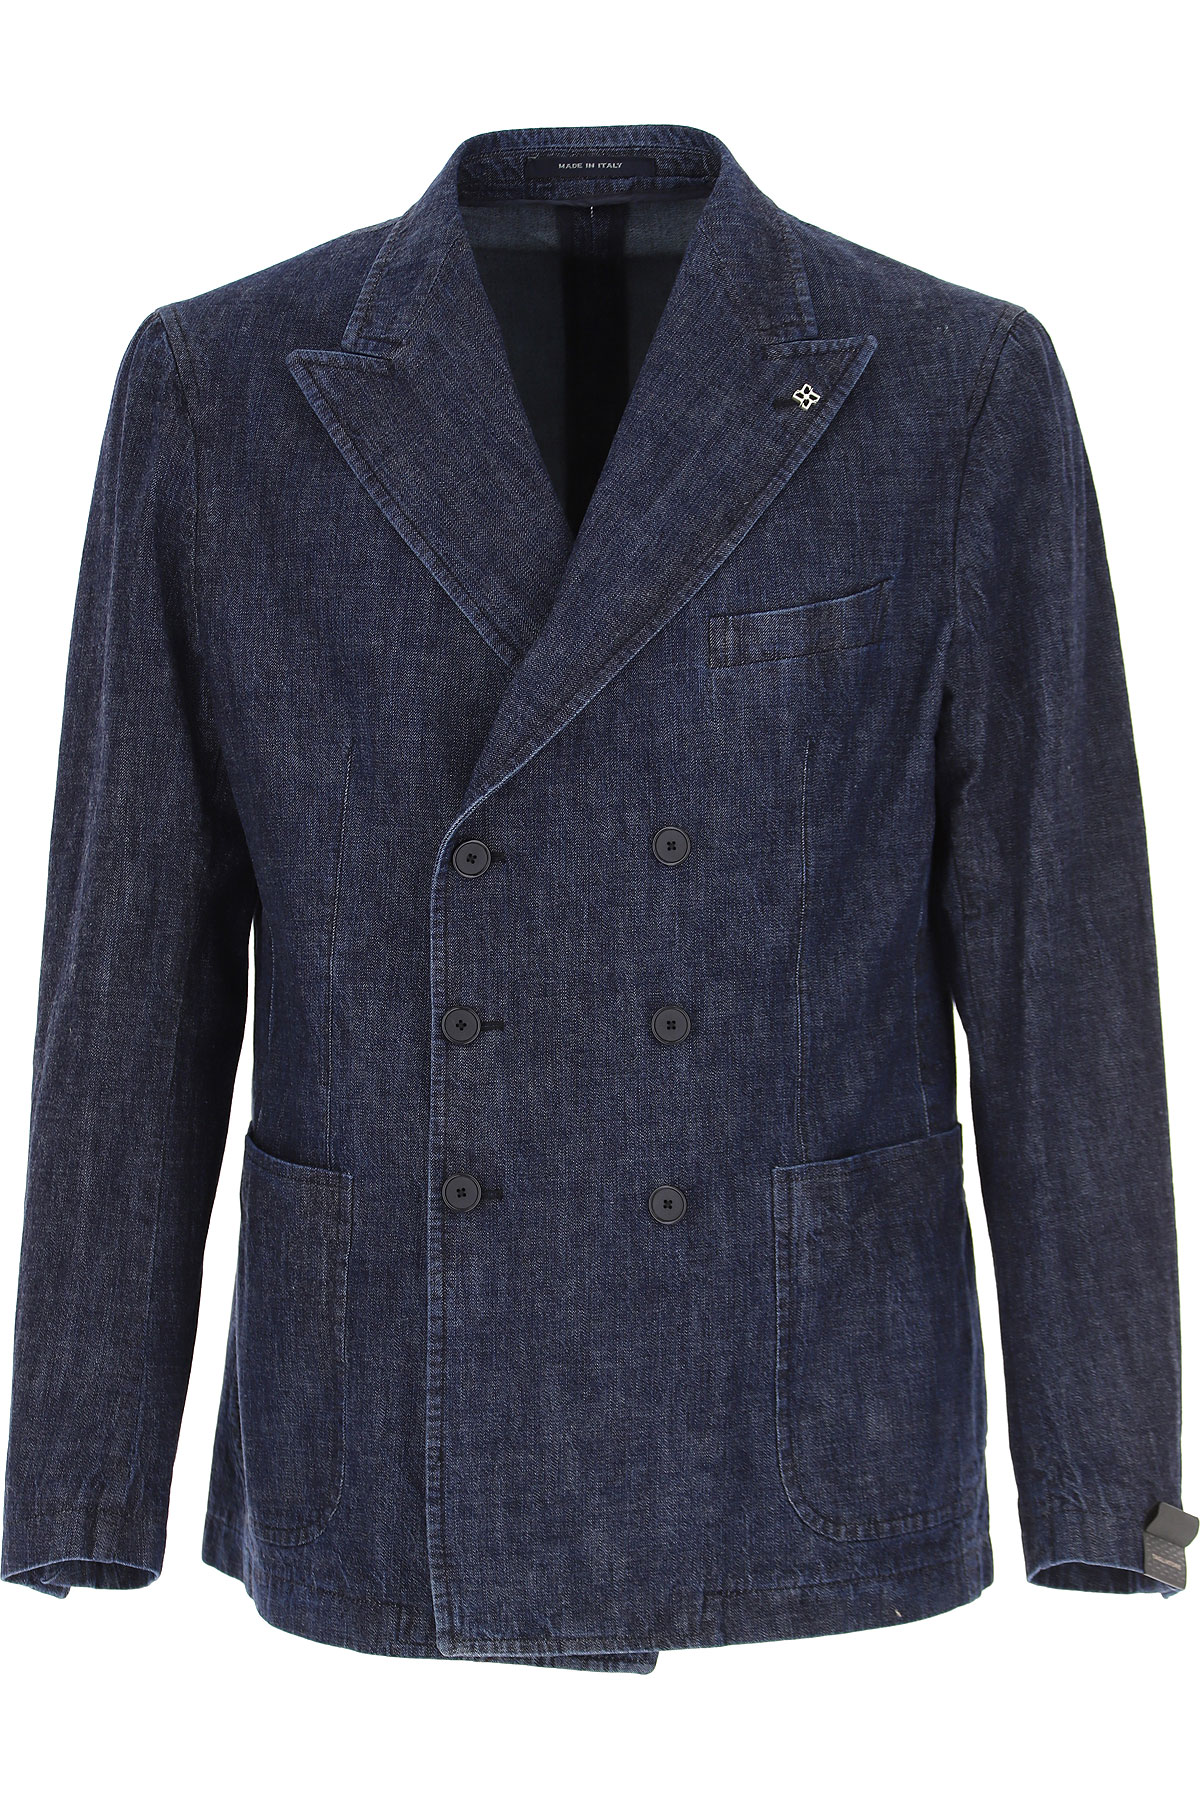 Tagliatore Blazer for Men, Sport Coat On Sale, Dark Denim Blue, Cotton, 2019, L M XL XXL